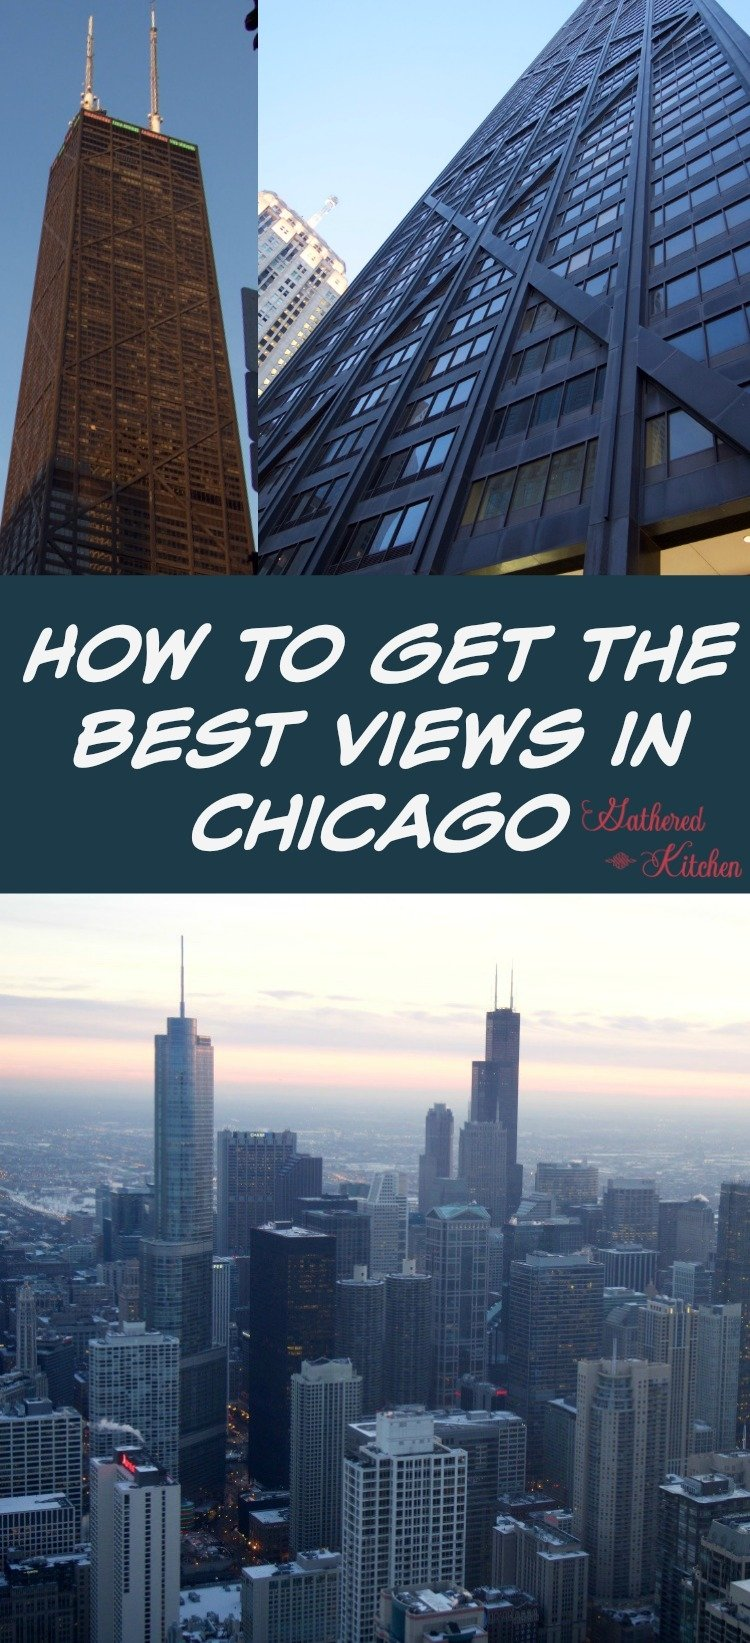 how-to-get-the-best-views-in-chicago